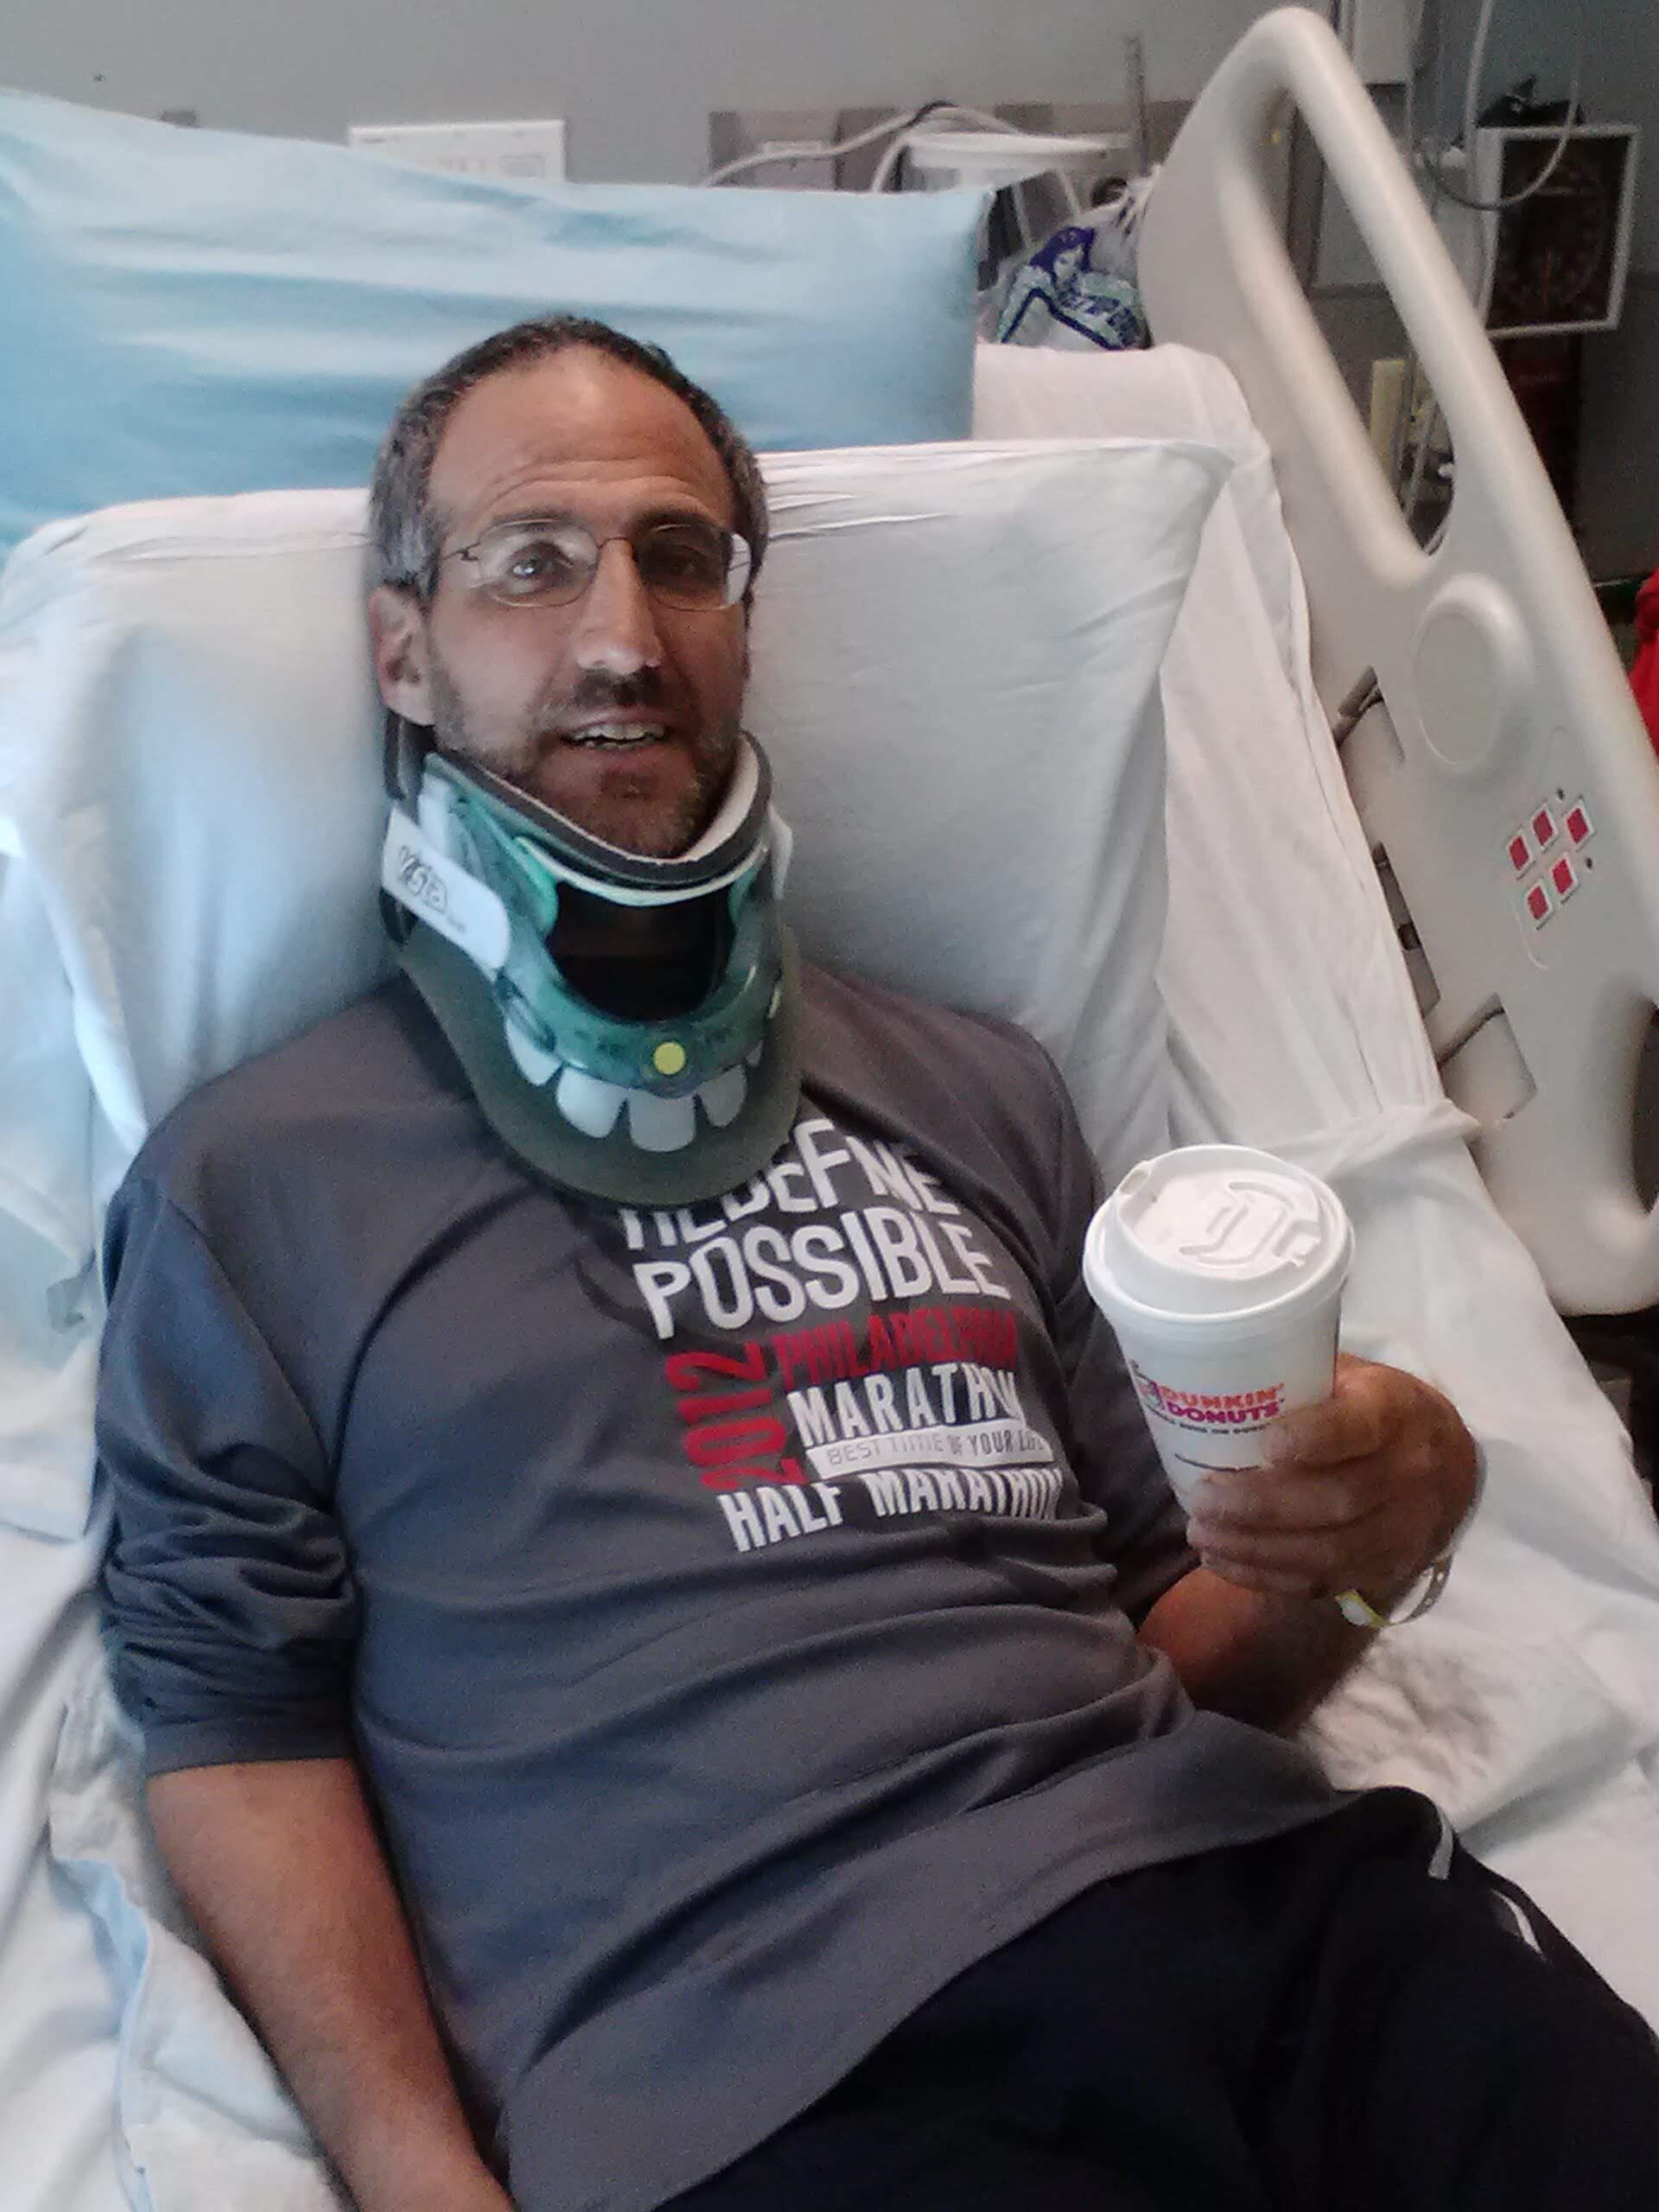 Rosenberg after his injury in 2013.